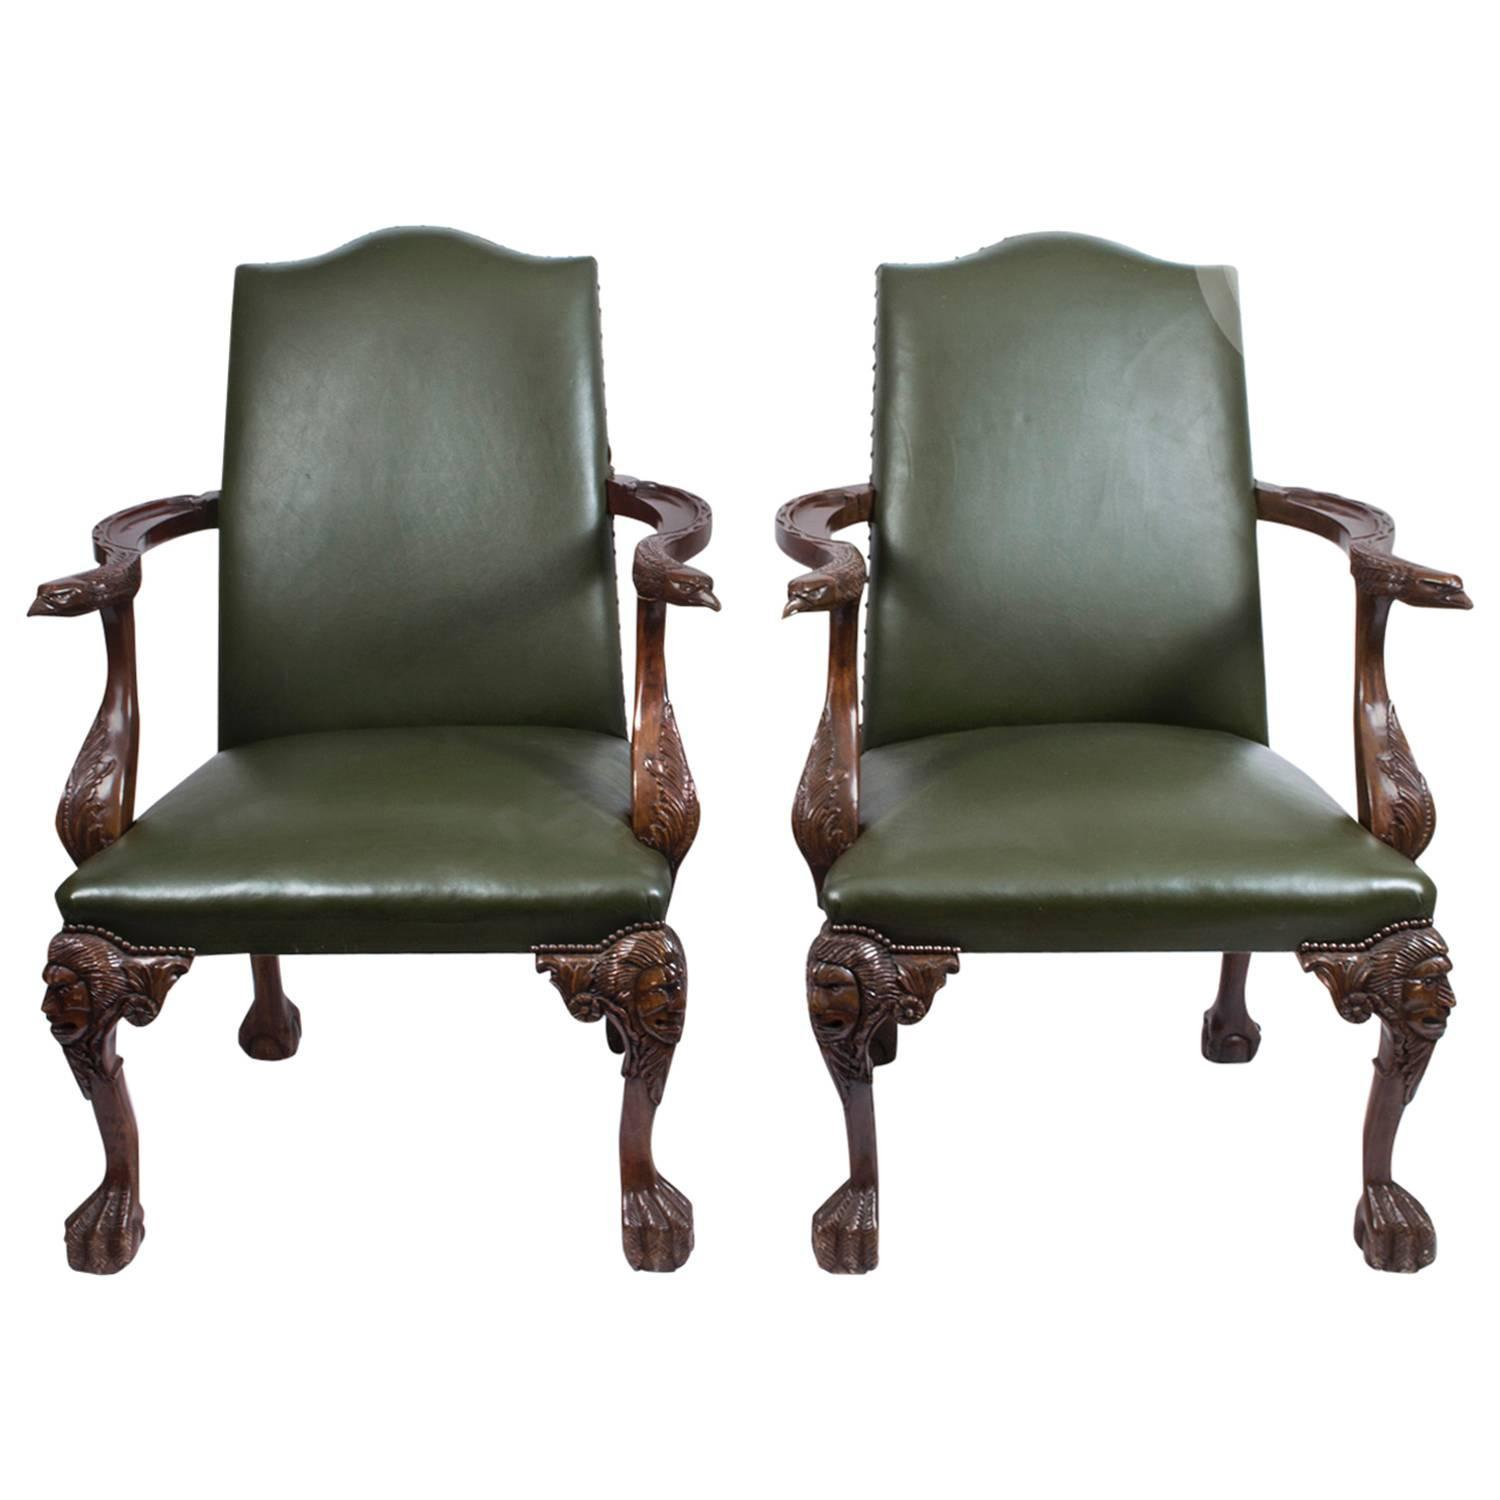 Rare set of twelve victorian solid oak leather antique chairs empire - Antique Pair Of Eagles Leather Library Chairs Armchairs C1920 For Sale At 1stdibs